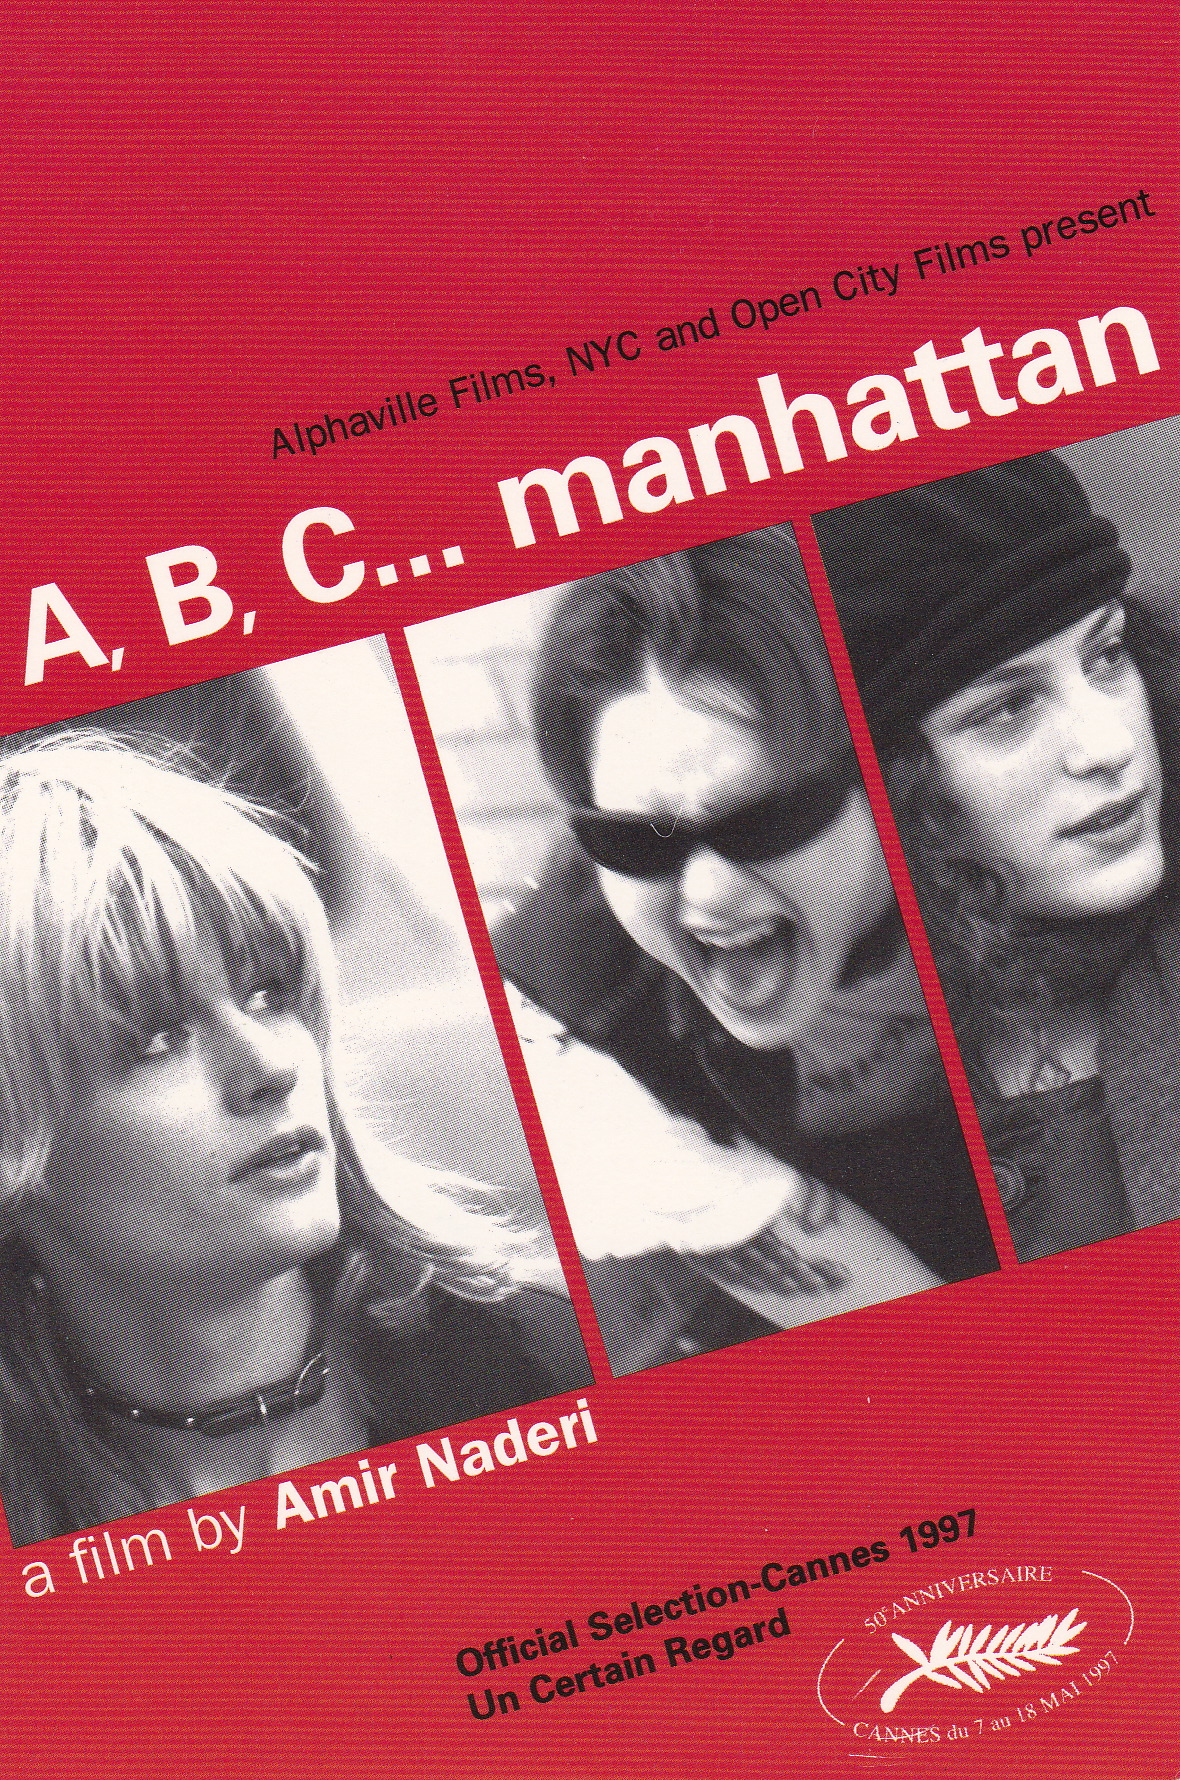 A, B, C... MANHATTAN (1997)   Click on image for link to film page.